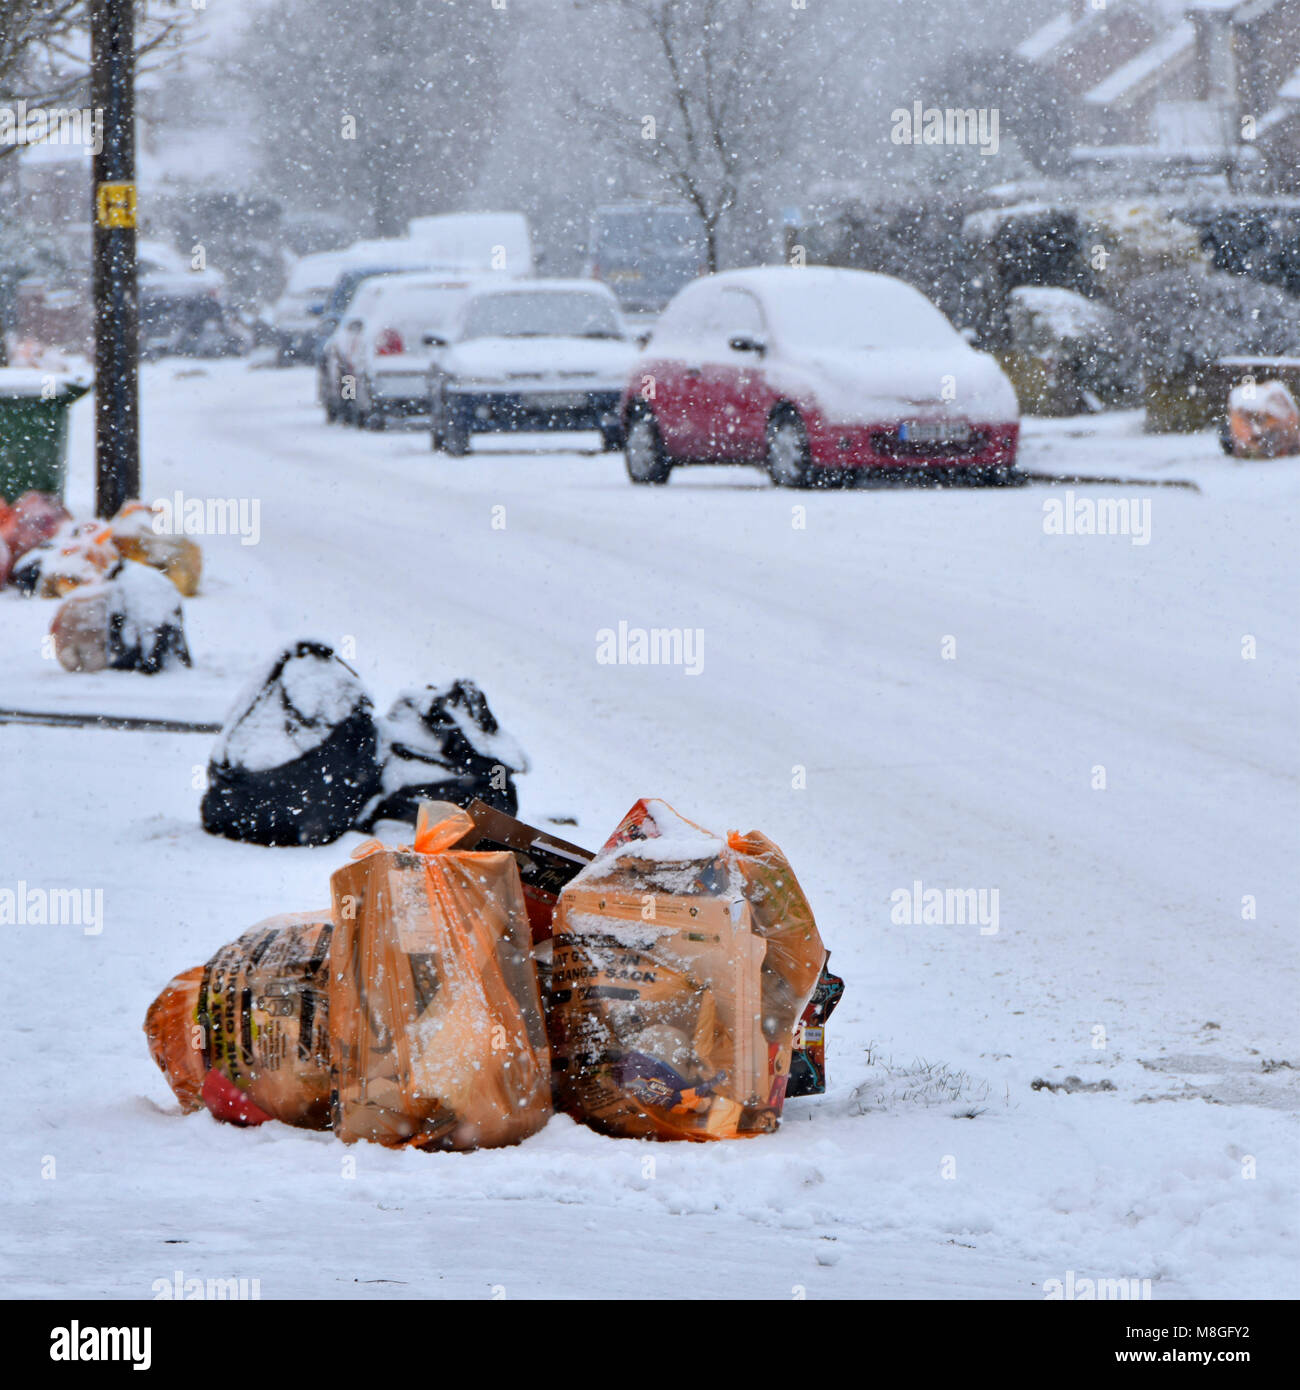 Winter street scene bags of recycle waste & black sack landfill rubbish snow covered on pavement for council - Stock Image